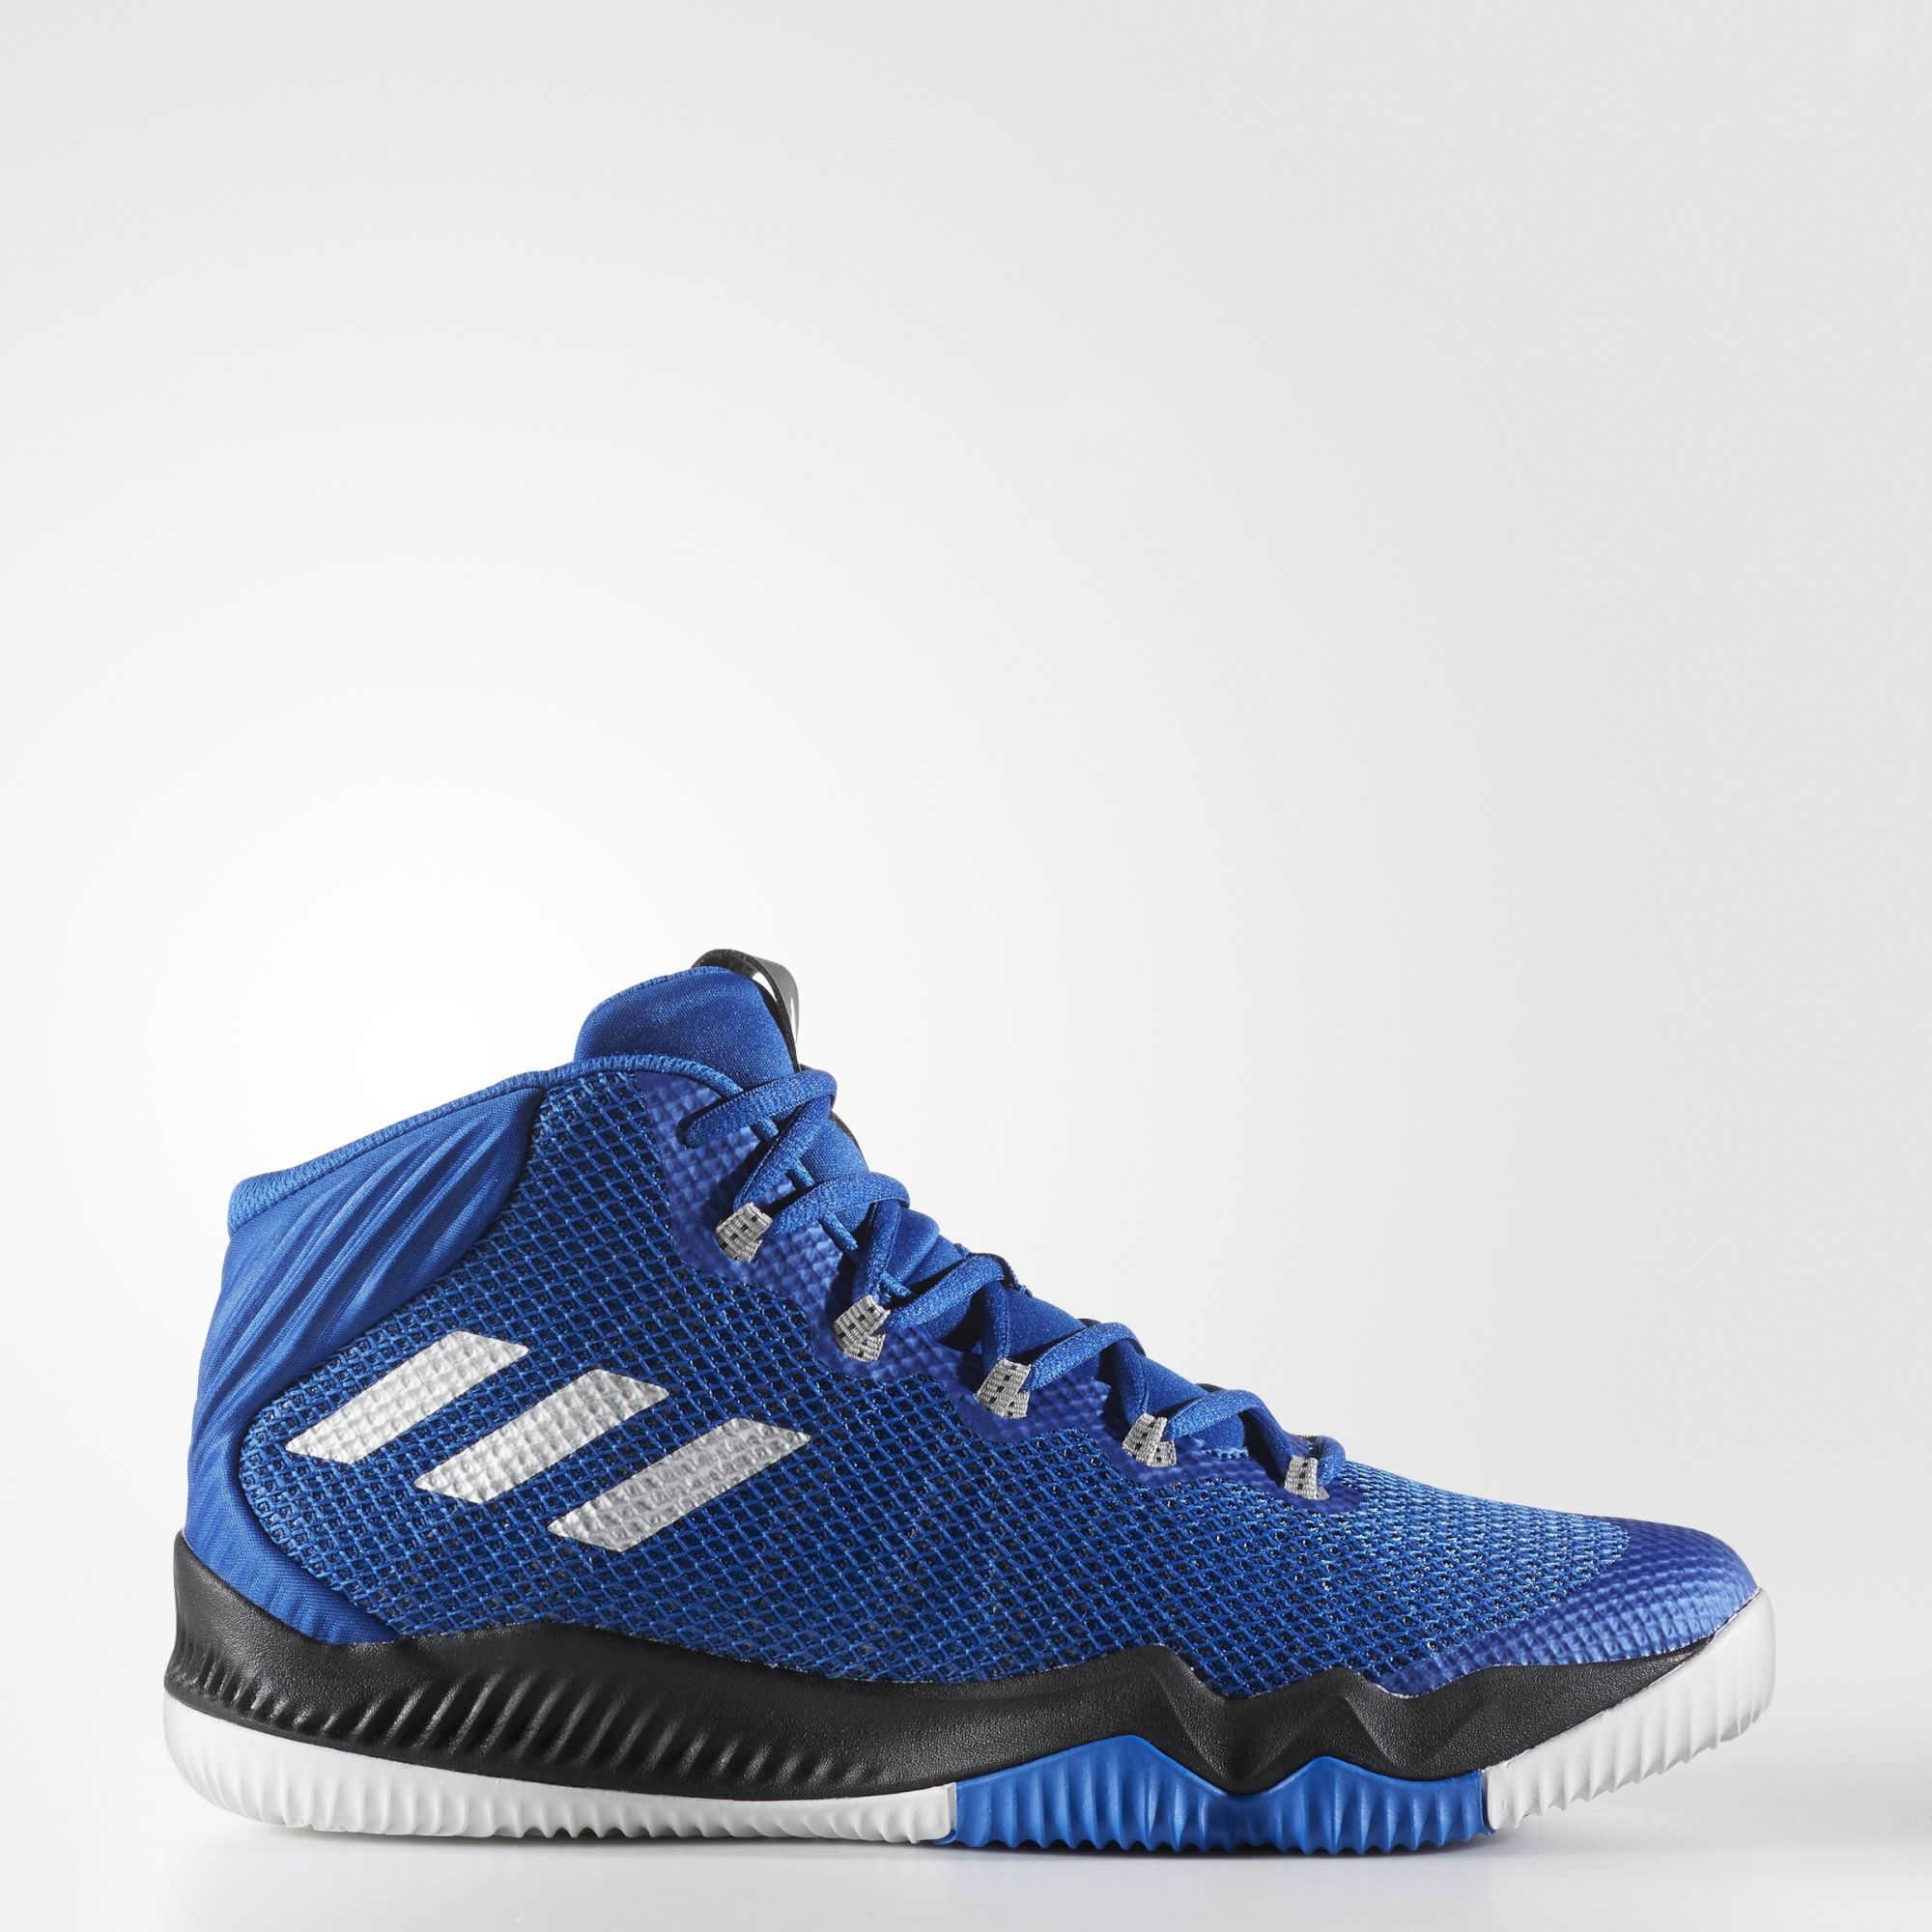 adidas crazy hustle blue 8